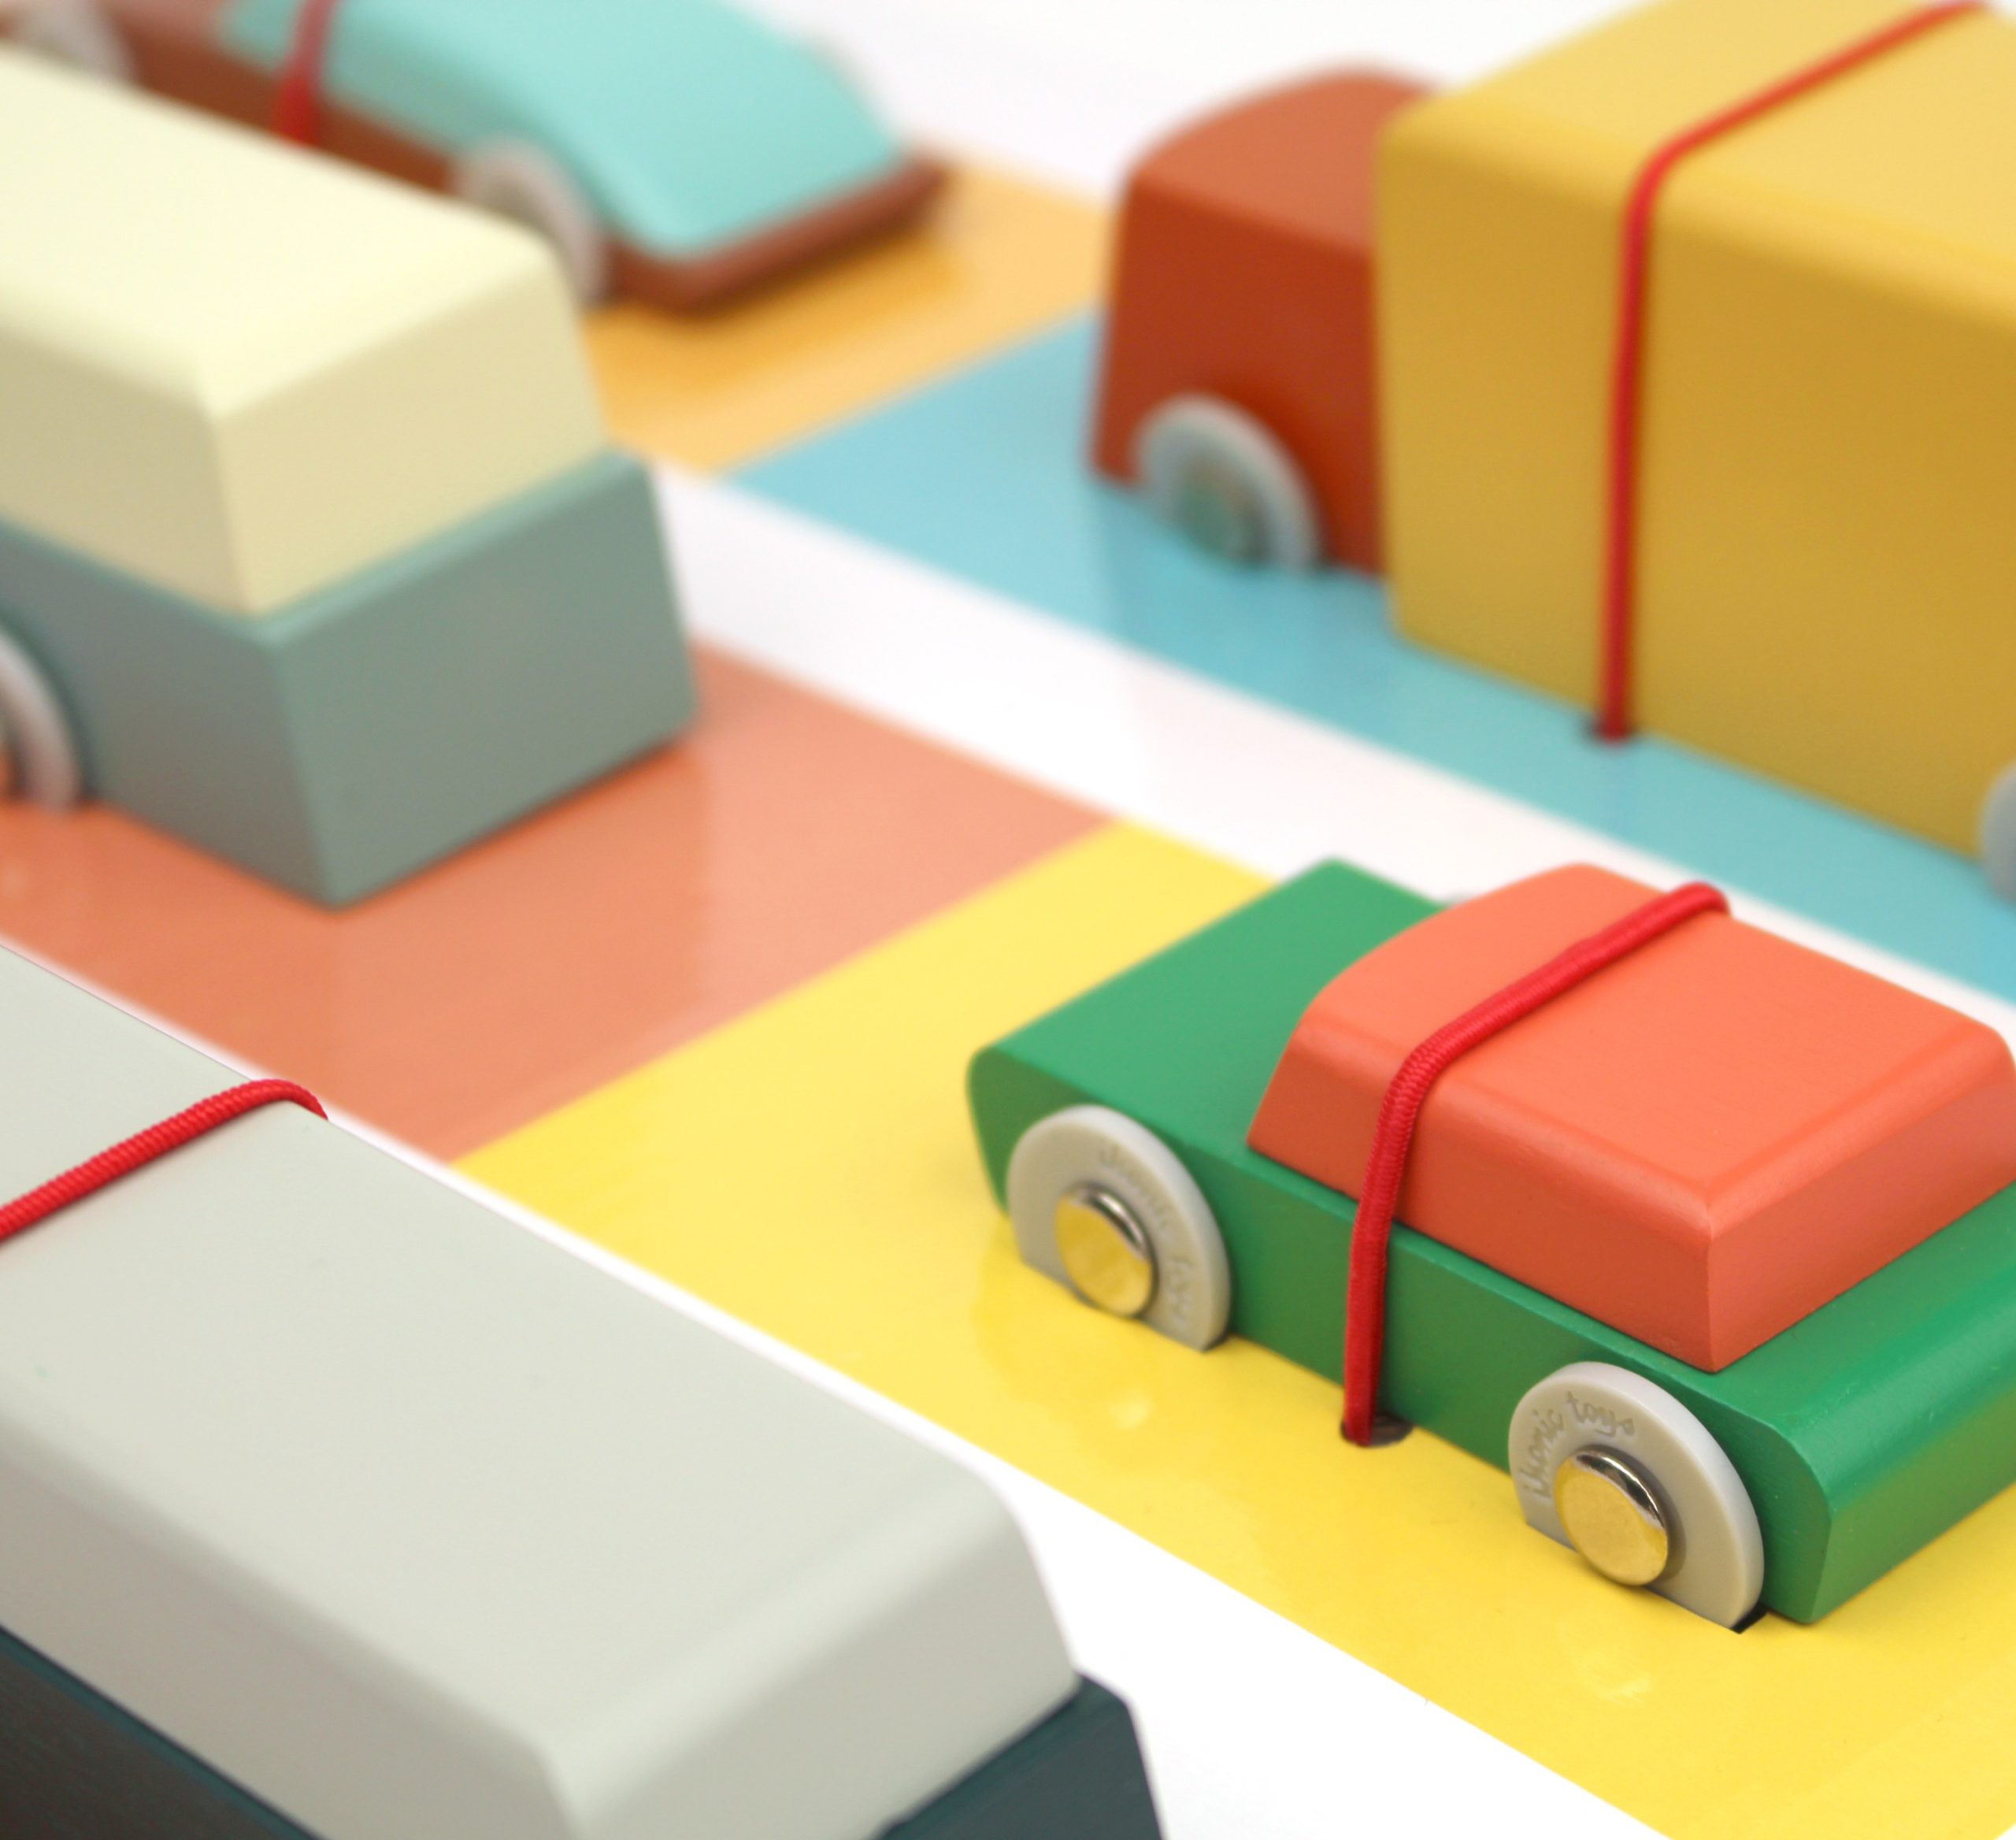 Premium Car Collection - 6 wooden toy vehicles